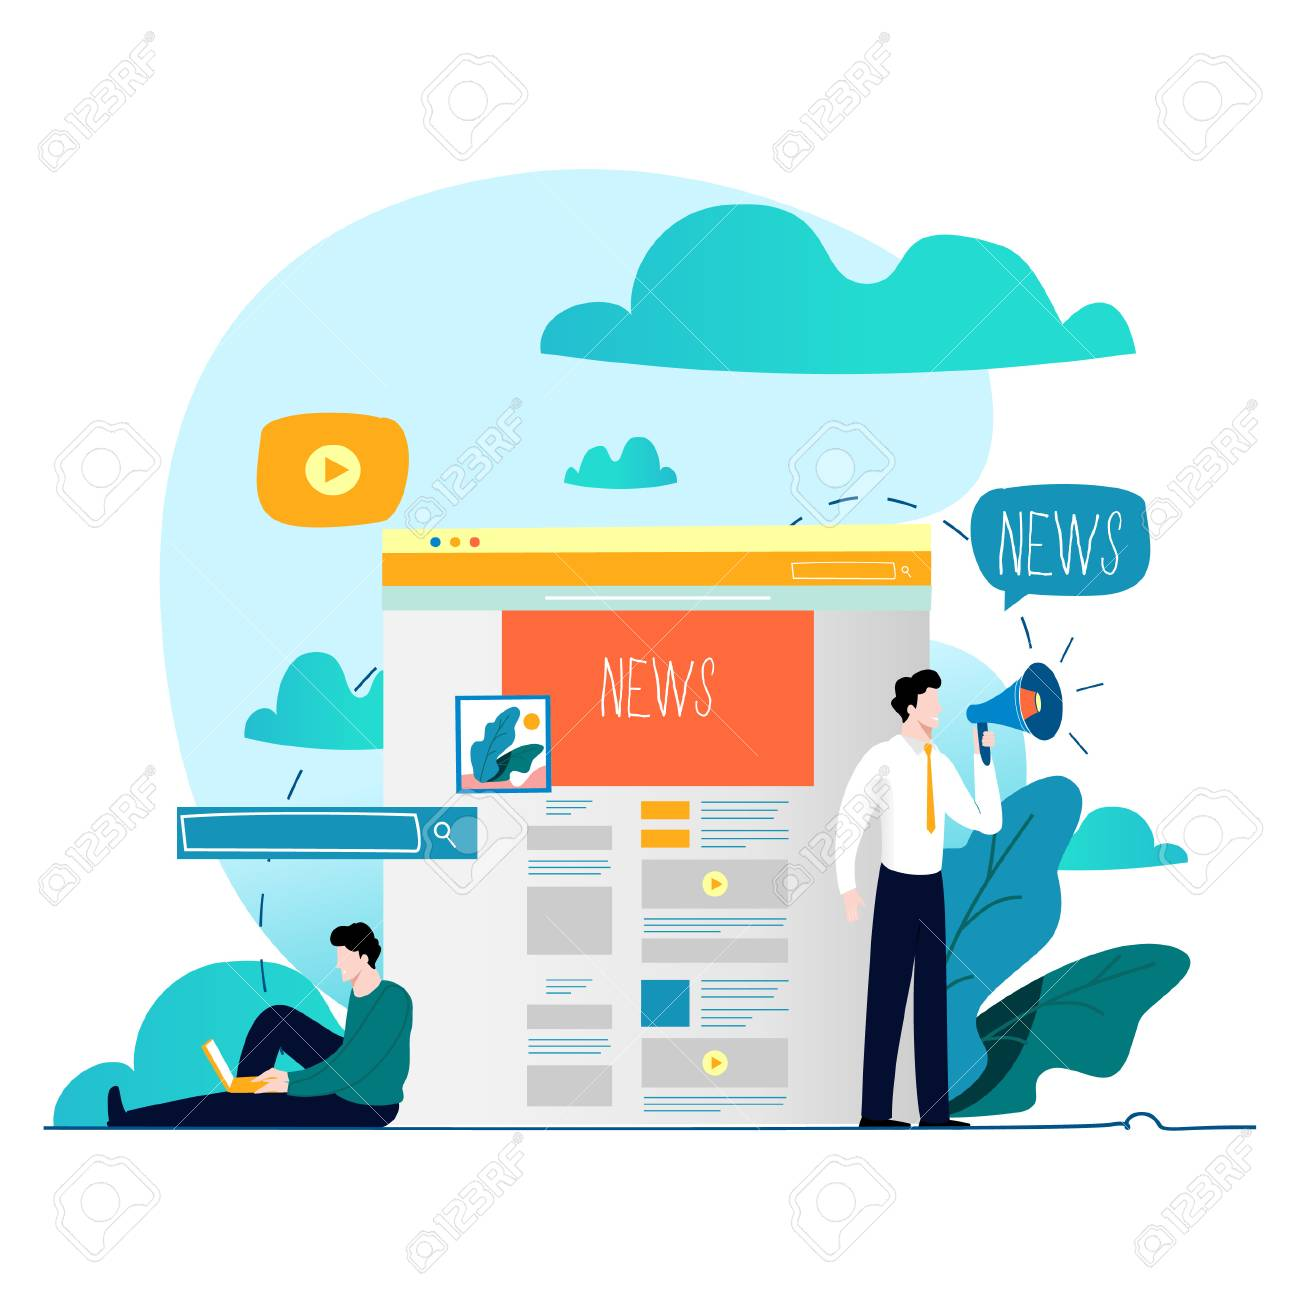 News update, online news, newspaper, news website flat vector illustration. News webpage, information about events, activities, company information and announcements - 95982540